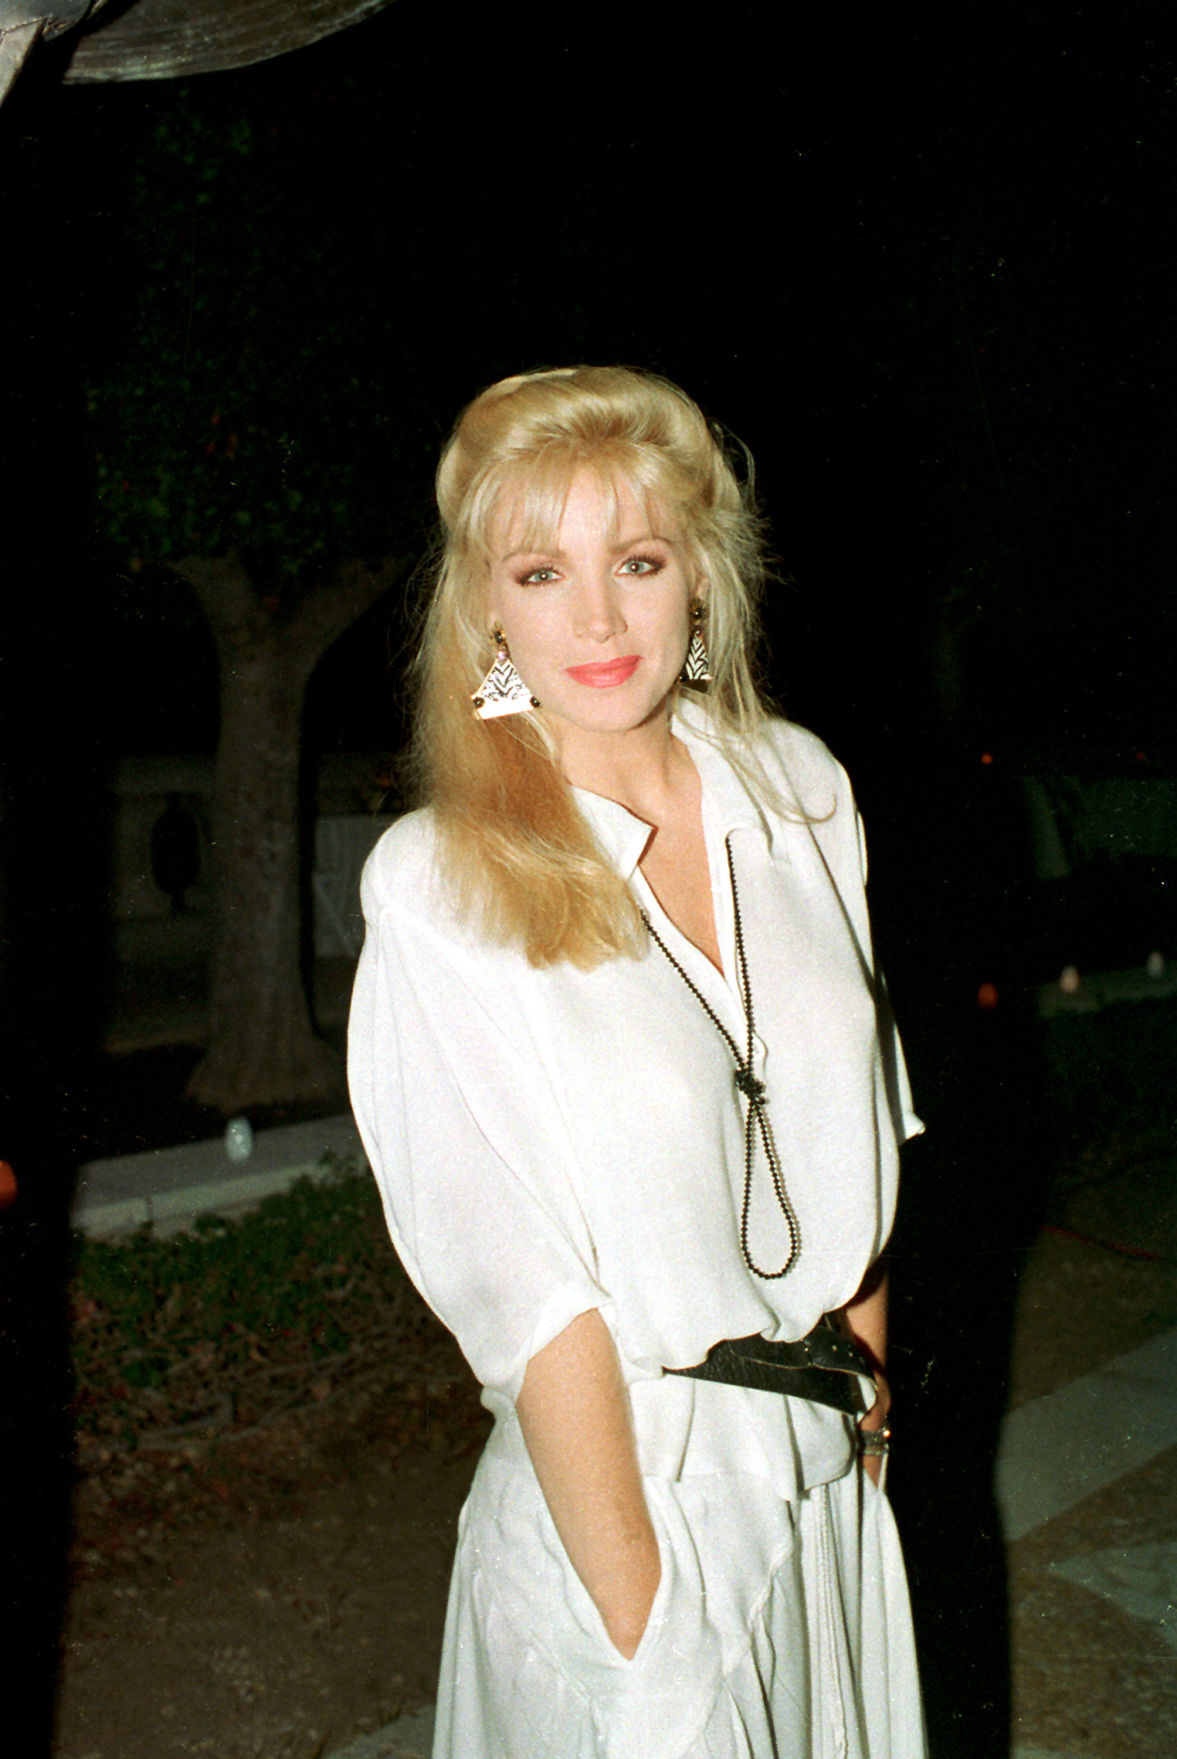 Photos: Hugh Hefner's famous wives, girlfriends and playmates | Fun and  Entertainment | qctimes.com